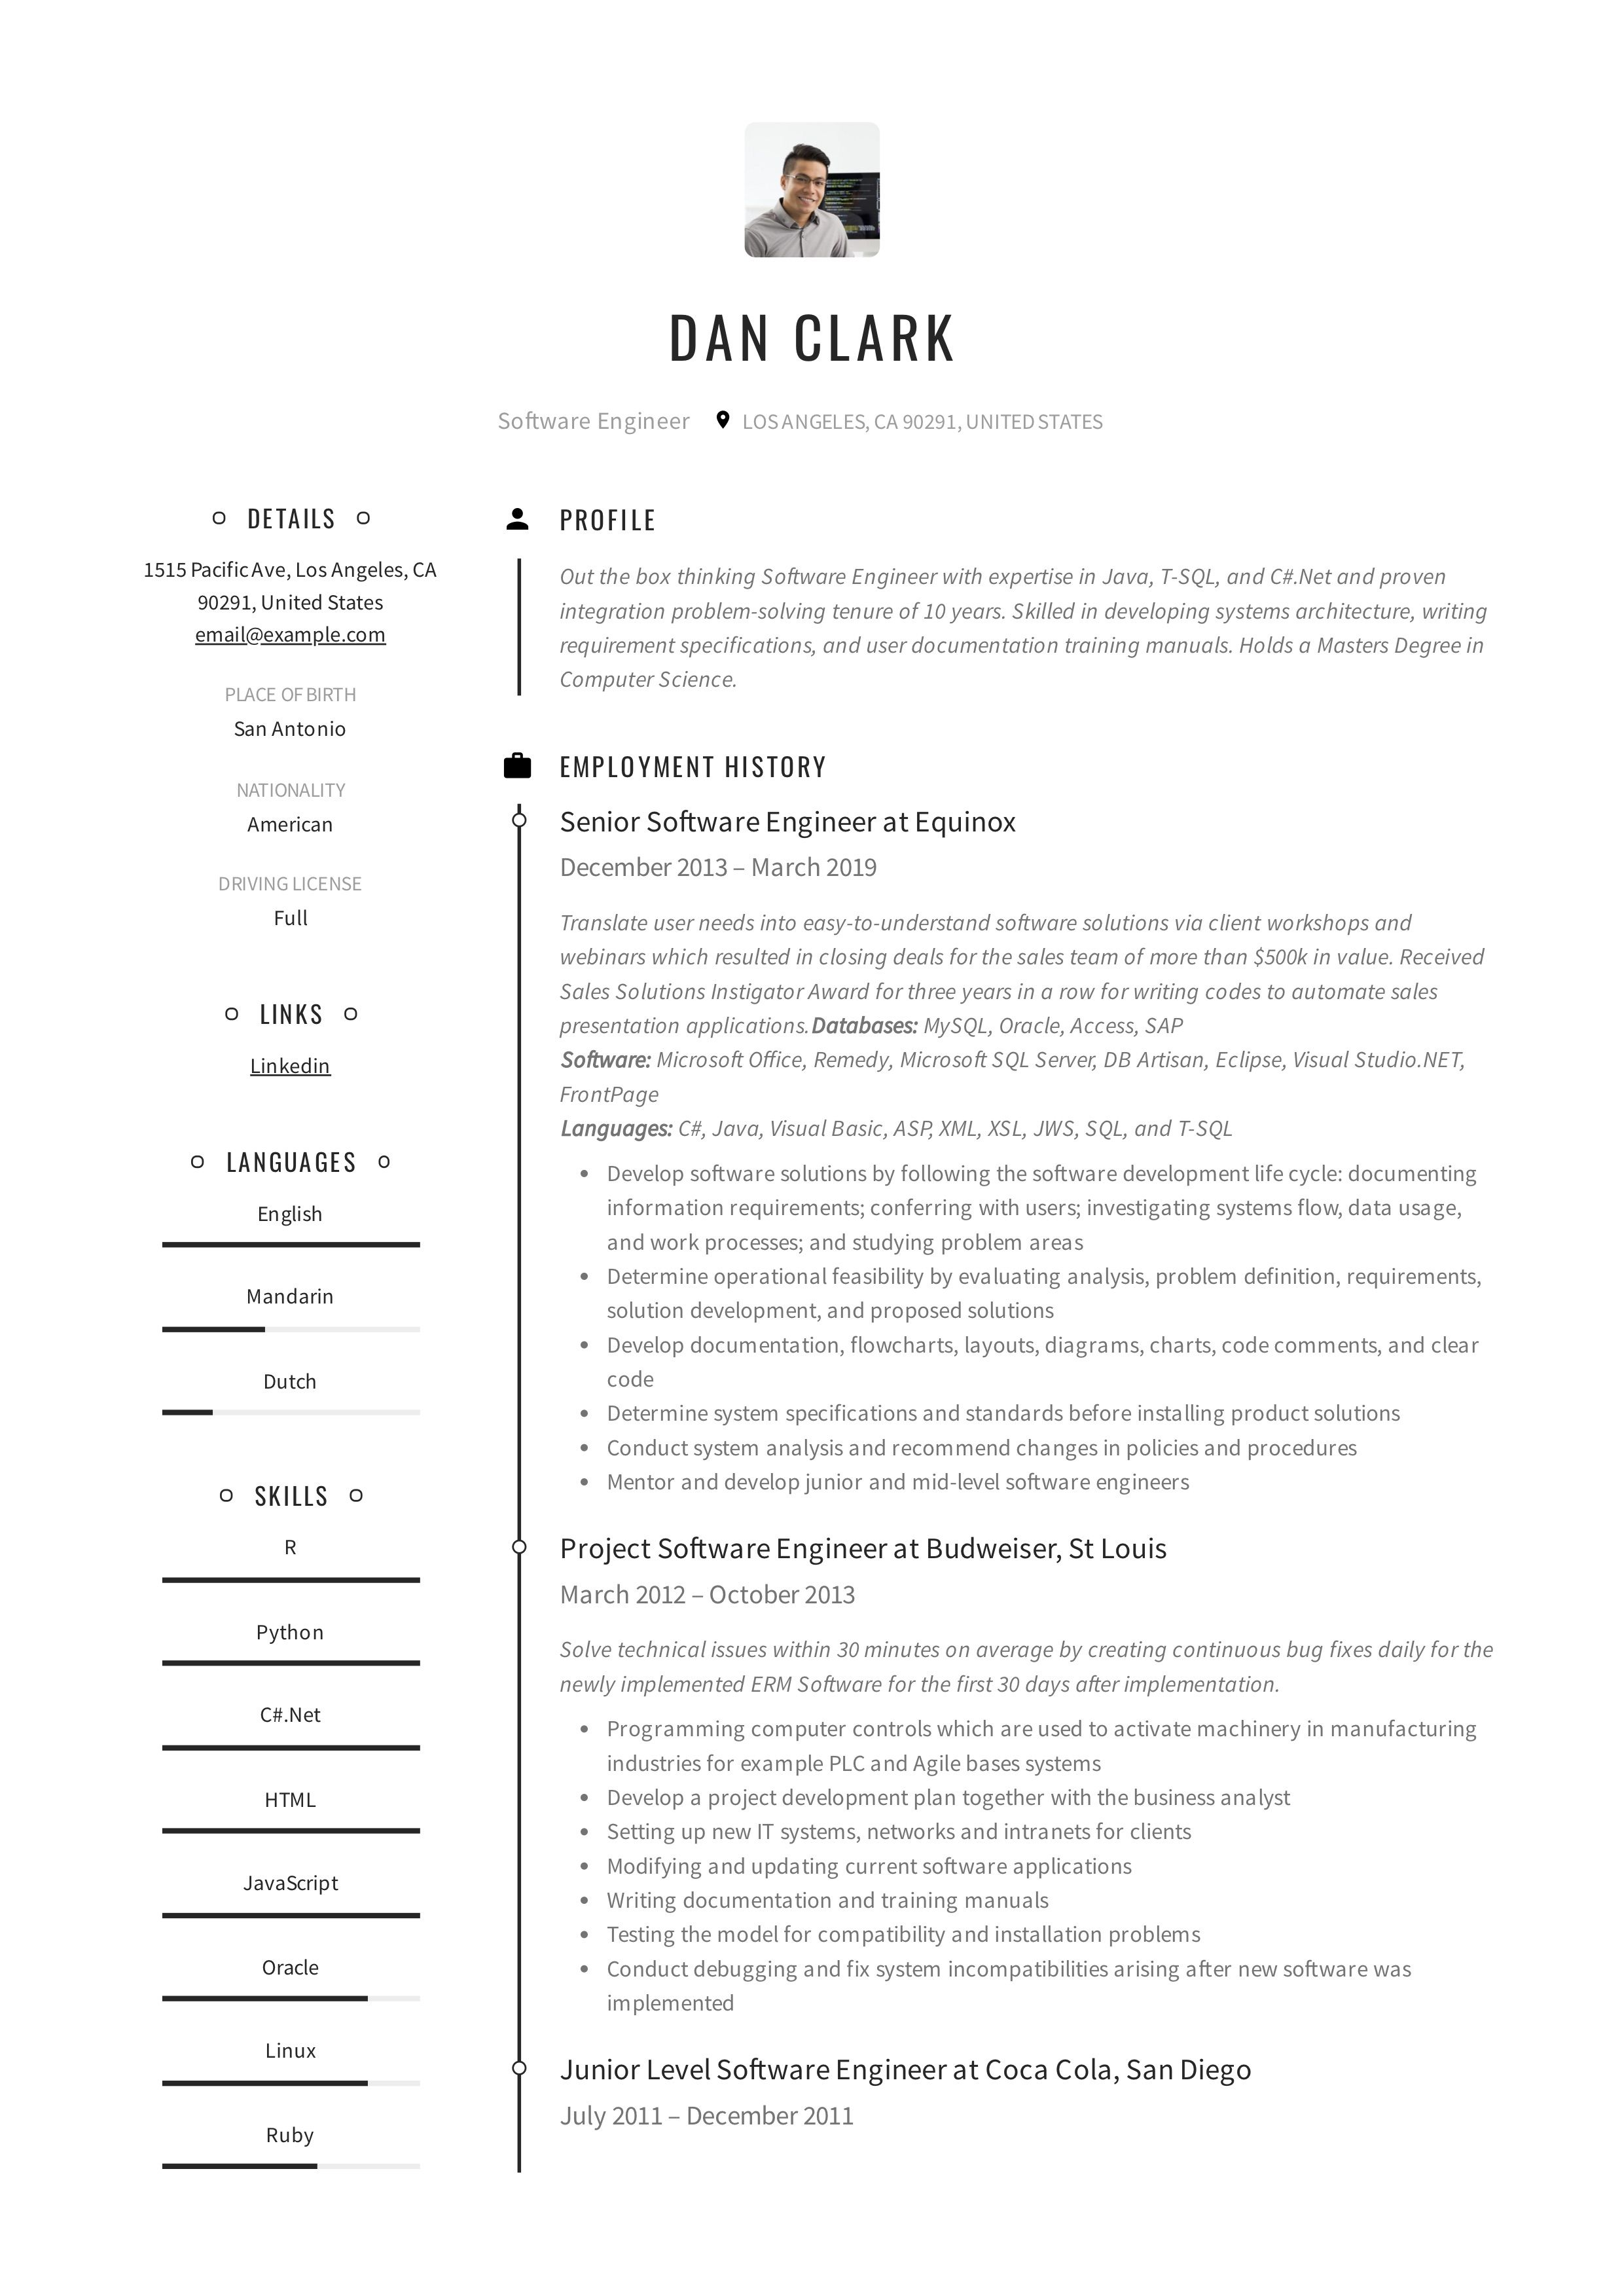 Resume Template Pdf Andriblog.design in 2020